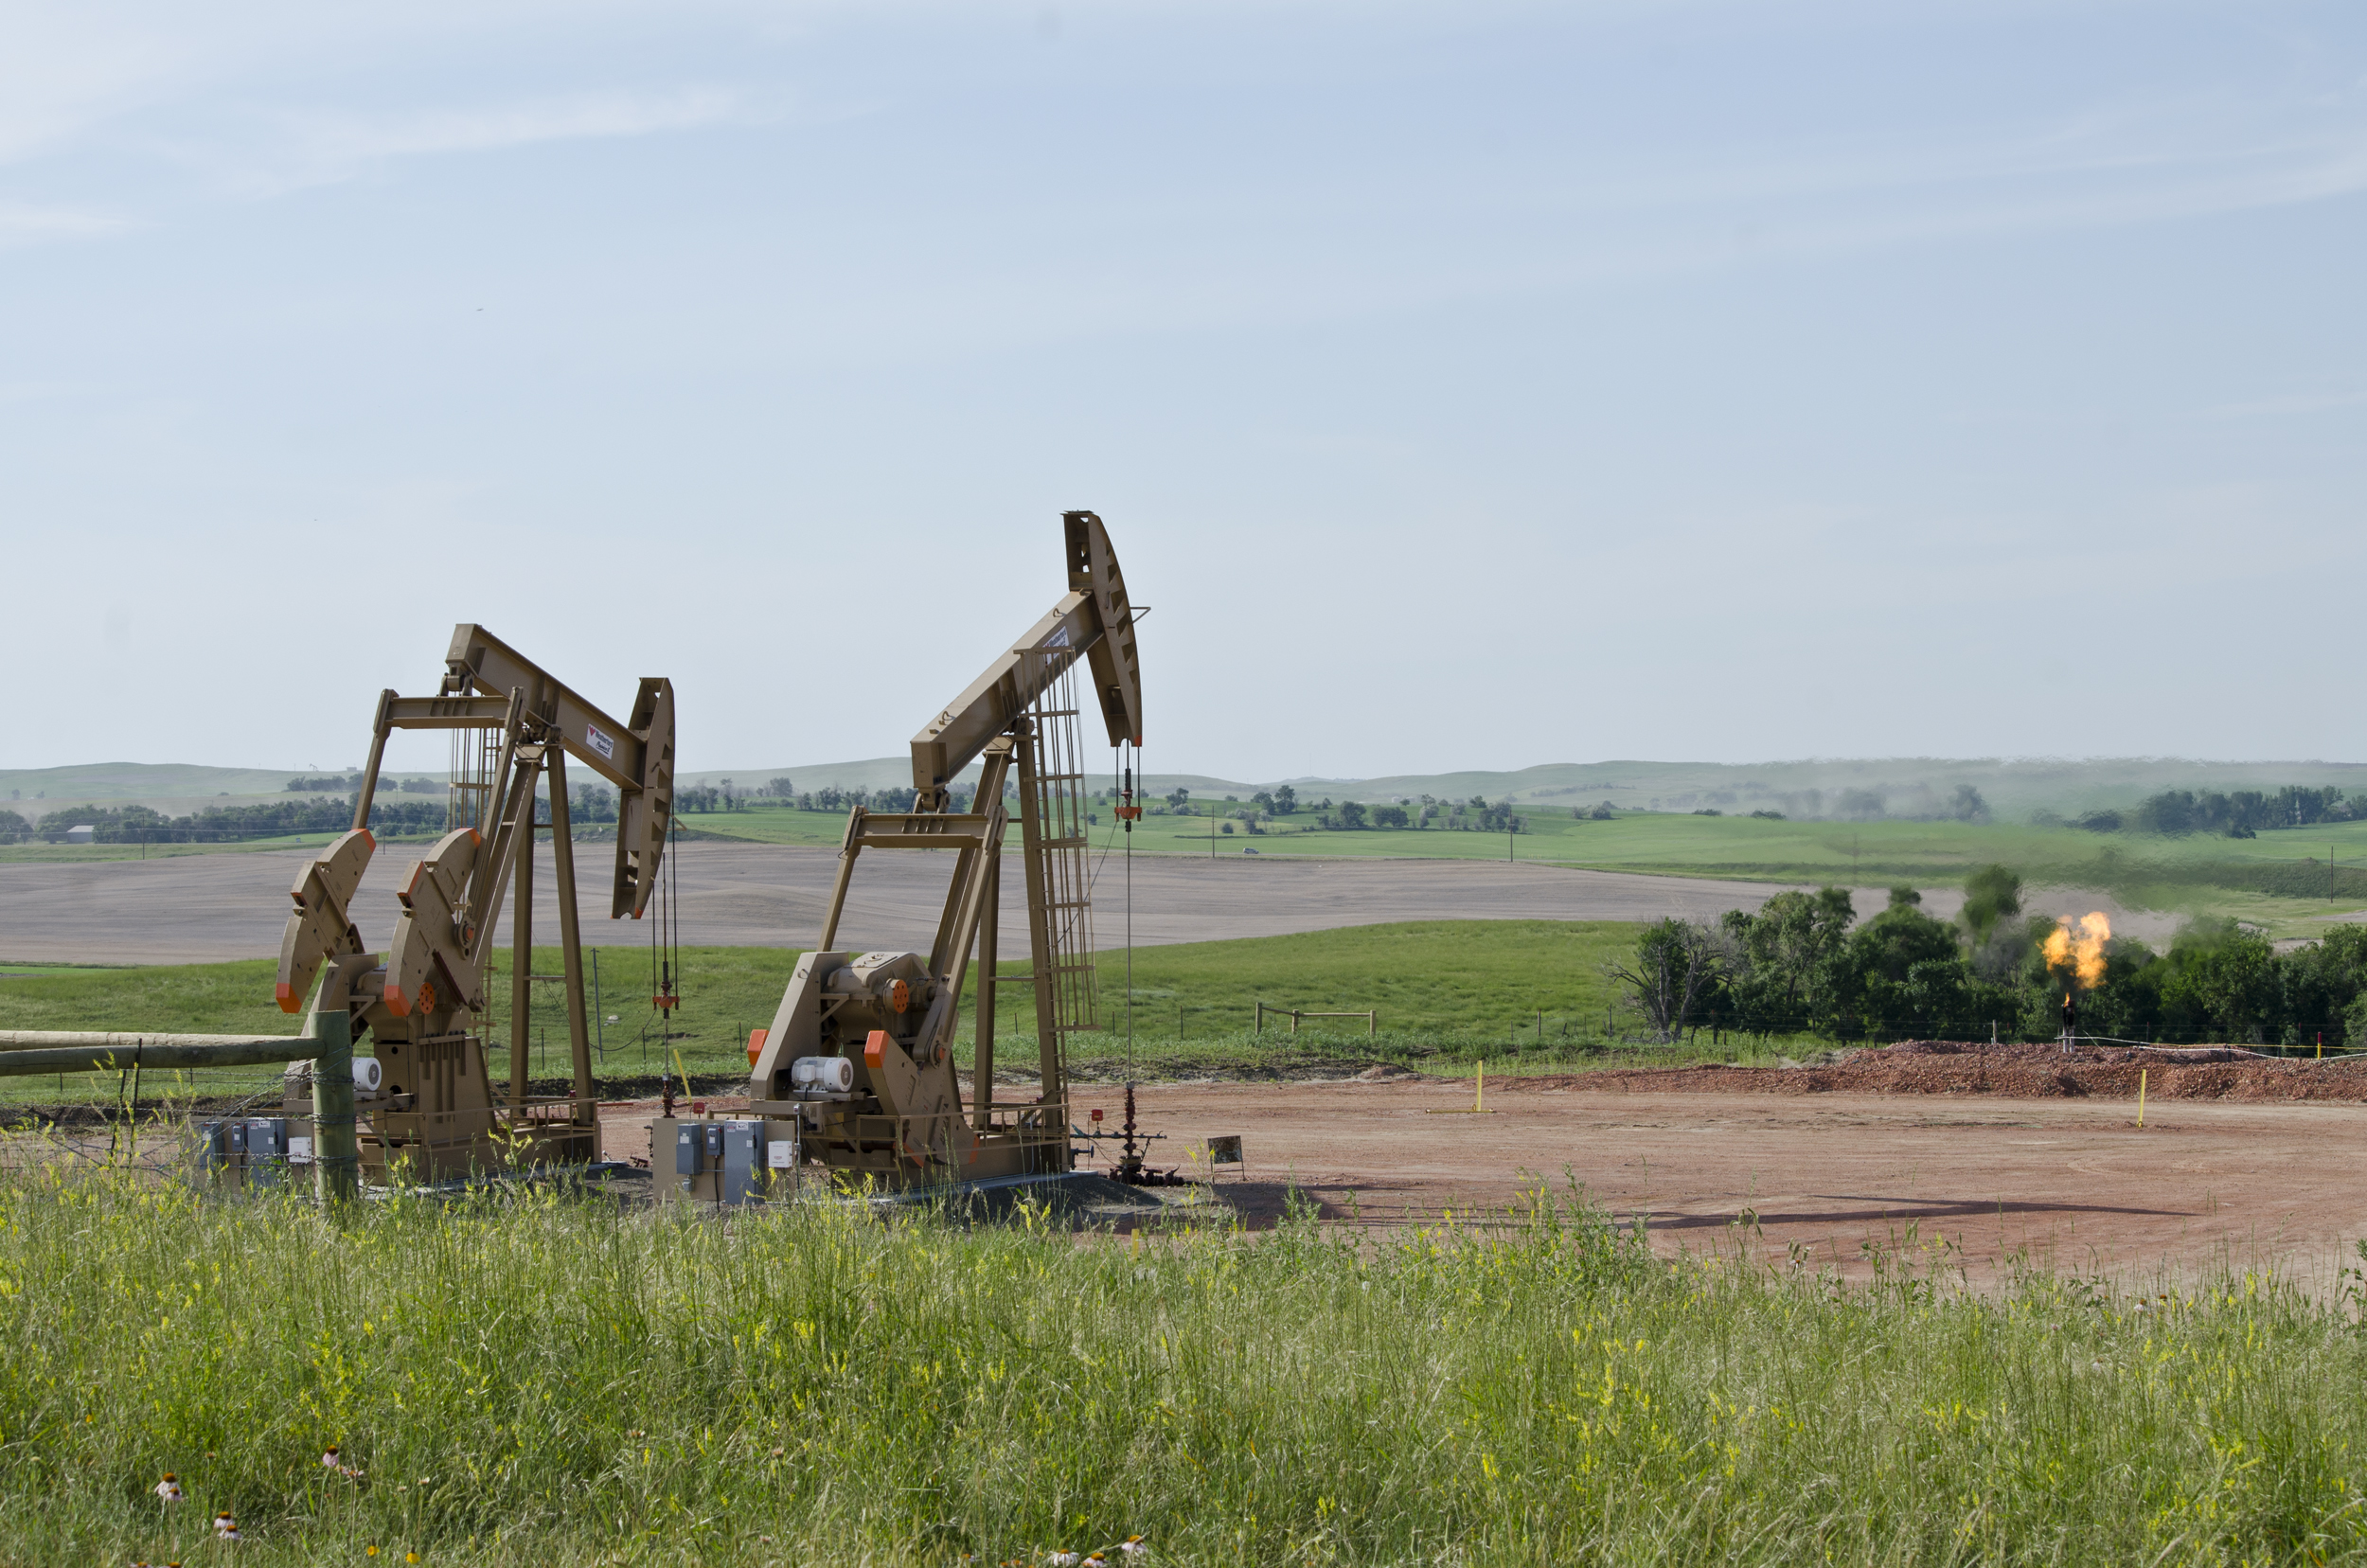 Flaring of unprocessed natural gas, as seen here on a well site in North Dakota (flare on right of picture), is one of several oilfield processes that can negatively affect air quality, as well as increasing carbon dioxide emissions.